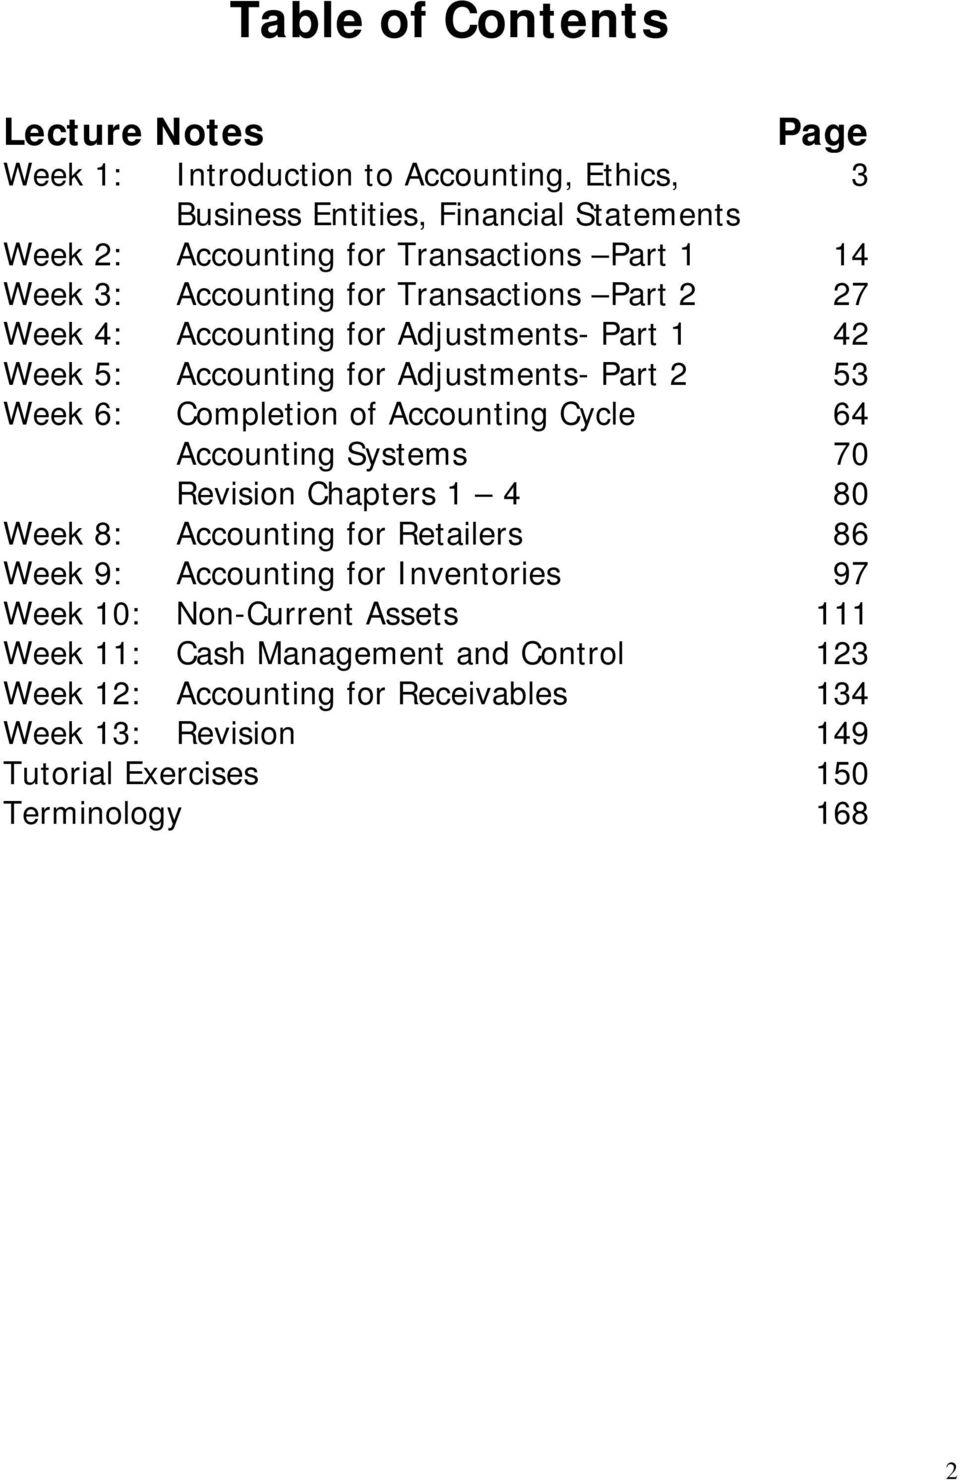 Completion of Accounting Cycle Accounting Systems Revision Chapters 1 4 64 70 80 Week 8: Accounting for Retailers 86 Week 9: Accounting for Inventories 97 Week